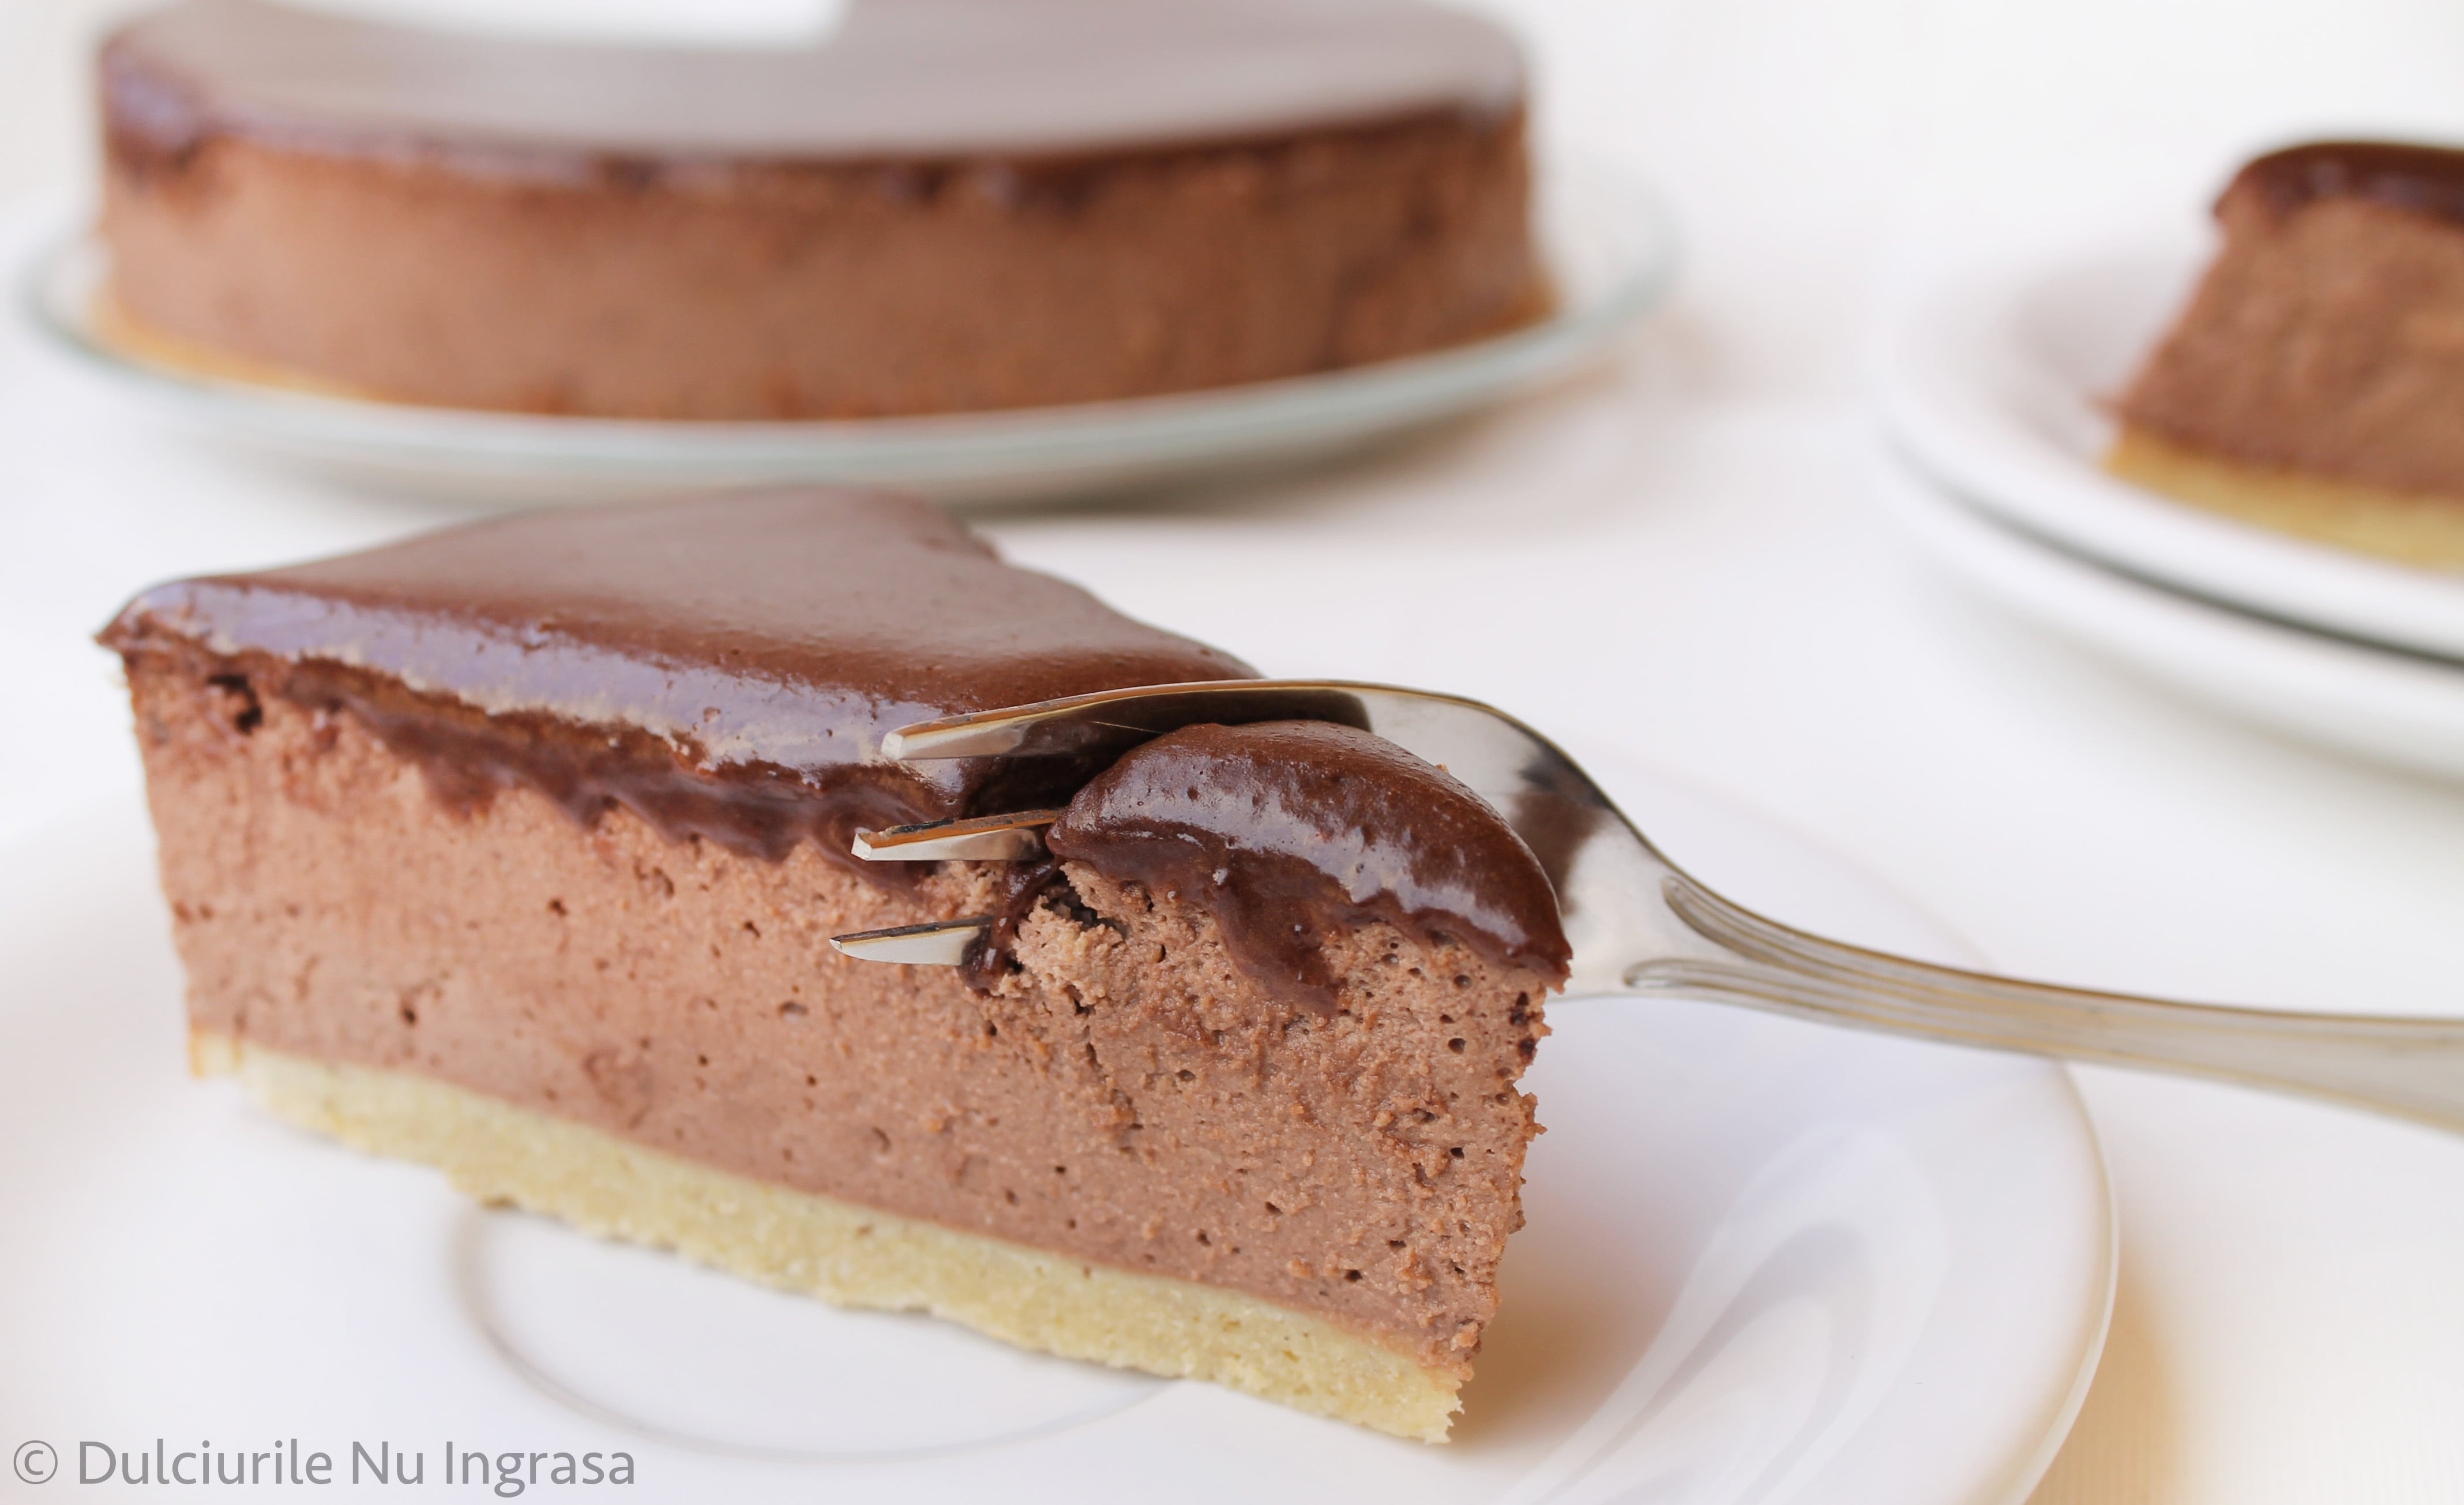 Low Fat Cheesecake Recipes  Protein Chocolate Cheesecake sugar free low fat gluten